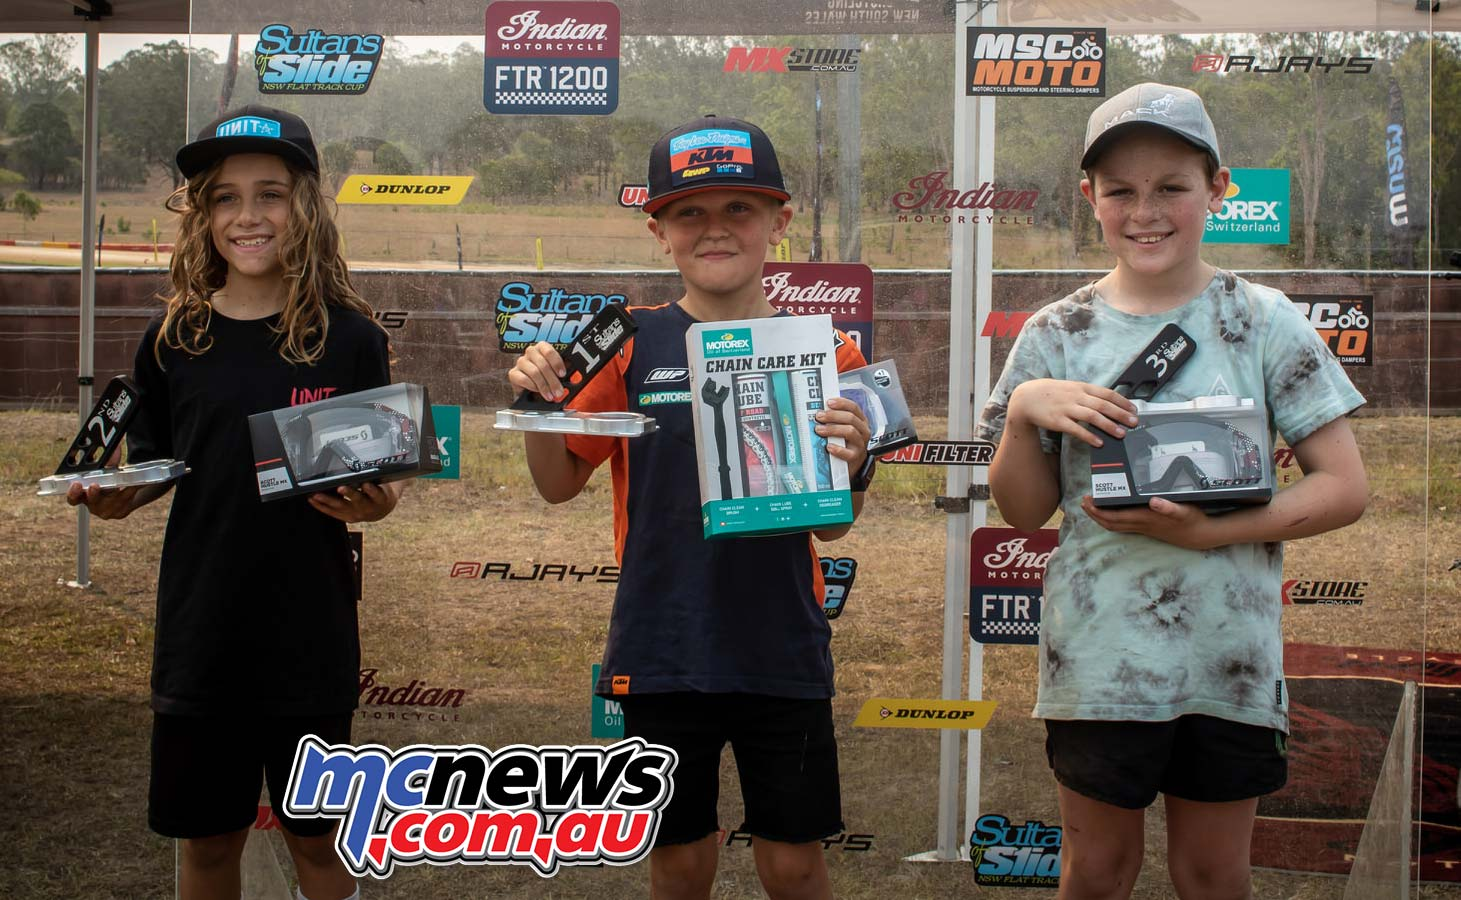 Sultans Of Slide cc Series Podium Sam Drane Muddle Clark